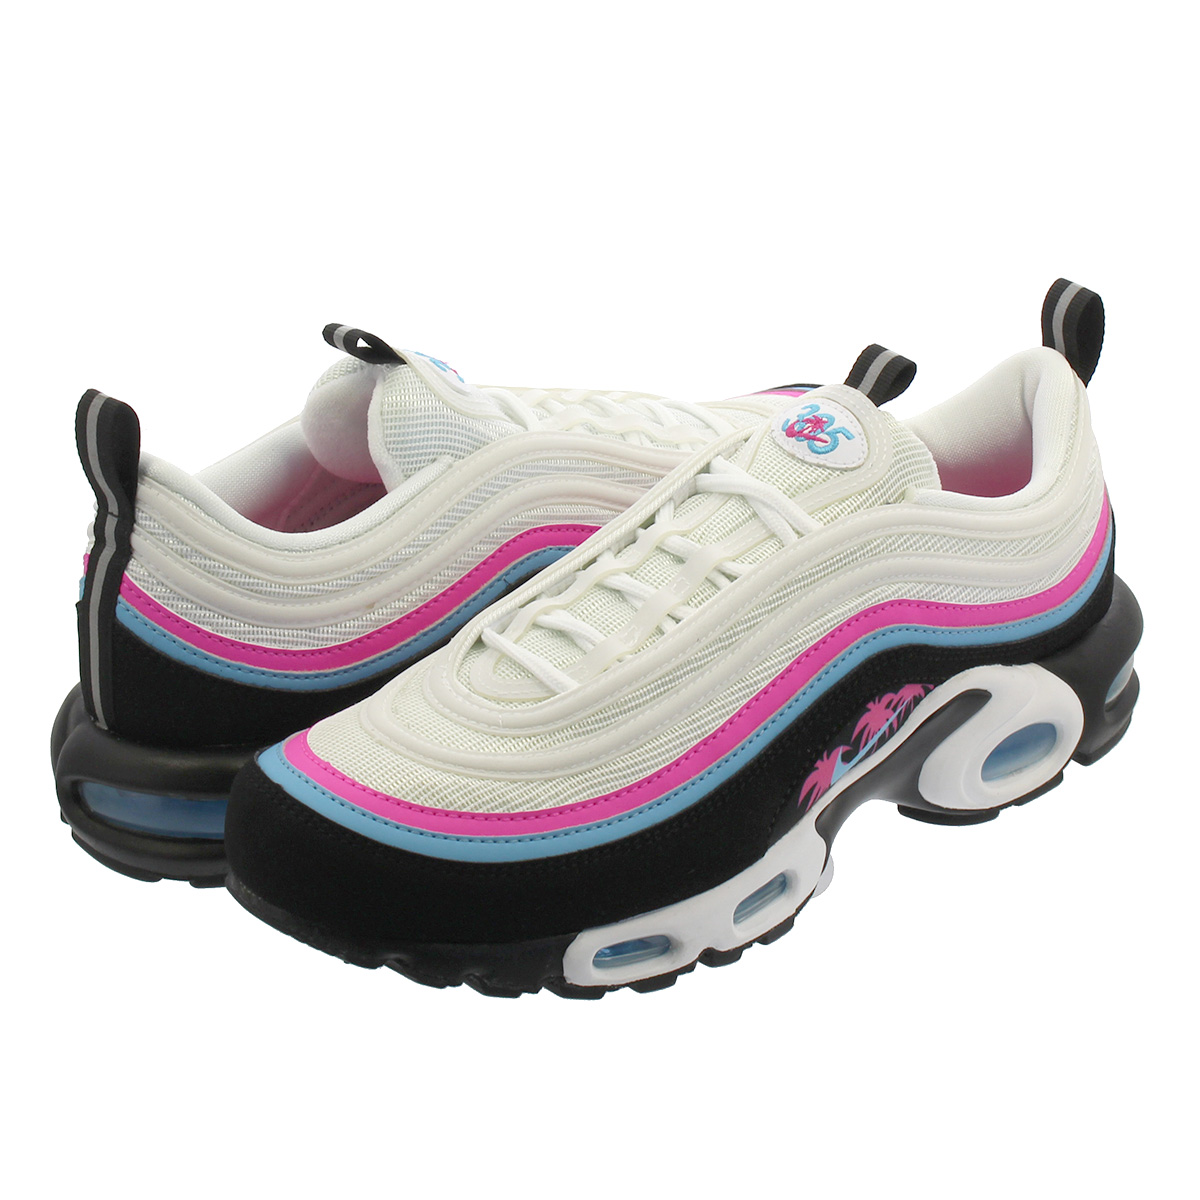 40e7ad88b0 SELECT SHOP LOWTEX: NIKE AIR MAX PLUS 97 Kie Ney AMAX +97 WHITE/BLUE GALE/ BLACK/LASER FUCHSIA av7936-101 | Rakuten Global Market